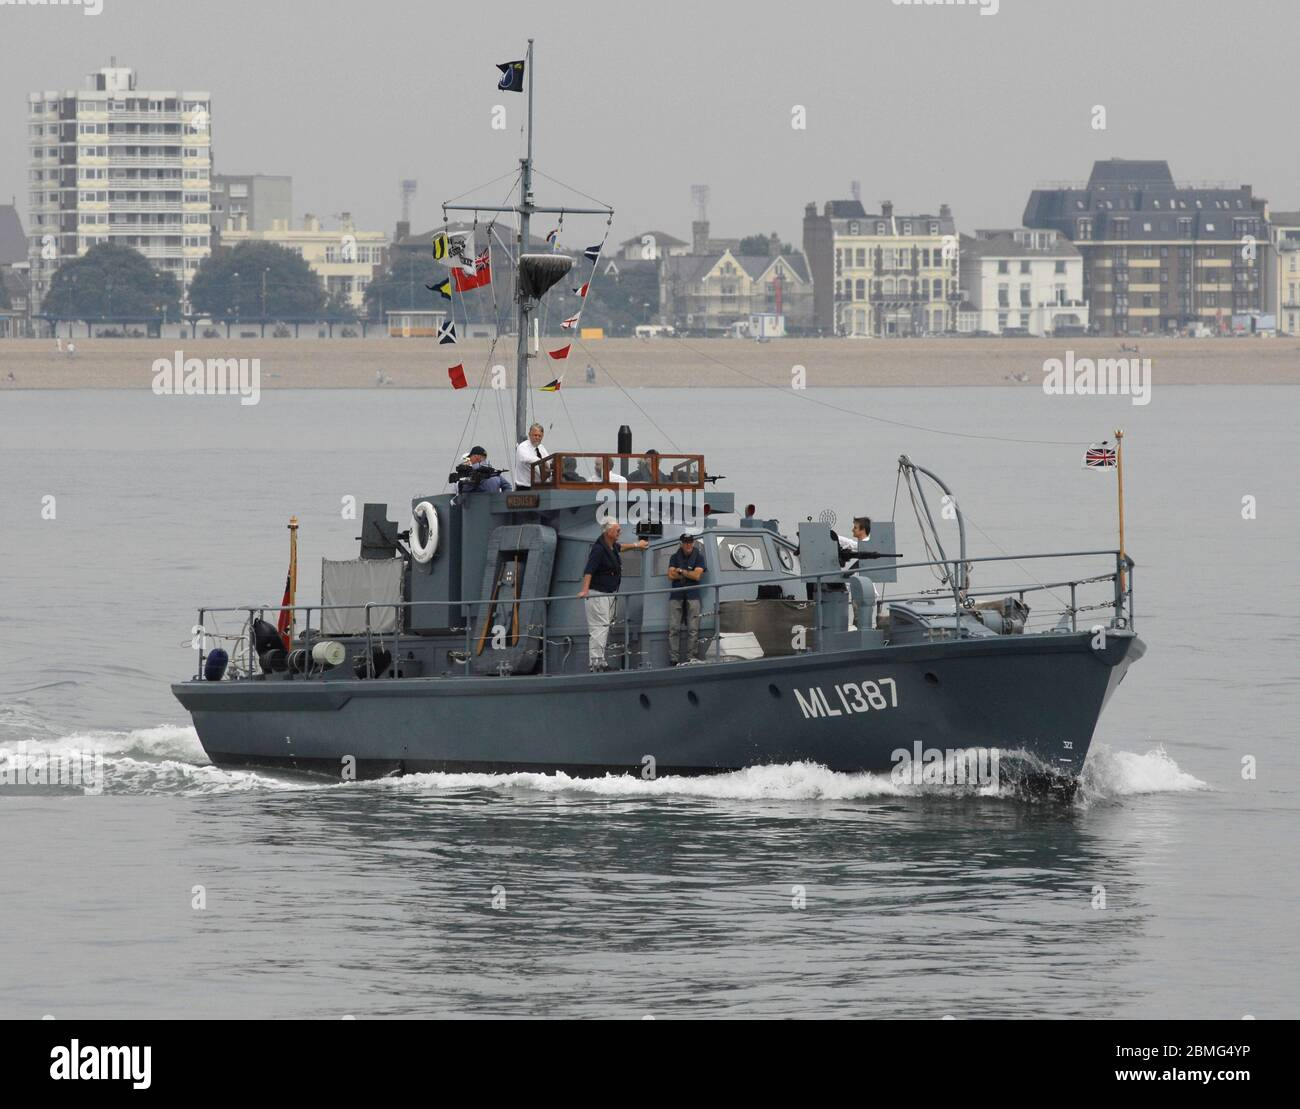 AJAXNETPHOTO. 25TH AUGUST, 2016. PORTSMOUTH, ENGLAND. - RESTORED WWII HARBOUR DEFENCE LAUNCH - RESTORED SECOND WORLD WAR HDML 1387 'MEDUSA' DURING THE SAIL-PAST MARKING THE 100TH ANNIVERSARY OF THE FOUNDING OF COASTAL FORCES. .PHOTO:JONATHAN EASTLAND/AJAXREF: D162508 6108 Stock Photo